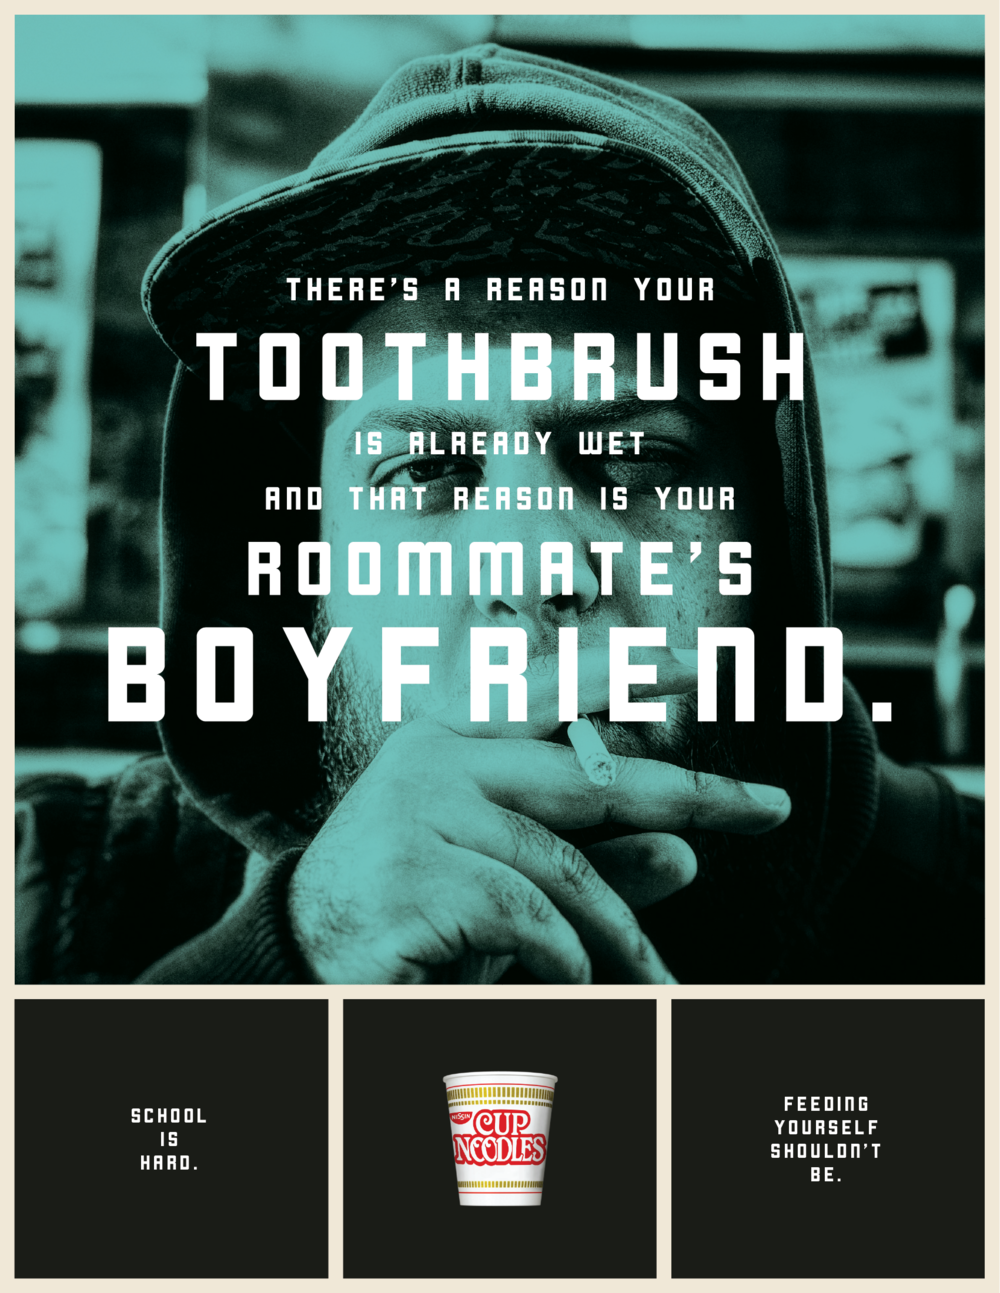 cup-noodles-toothbrush.png